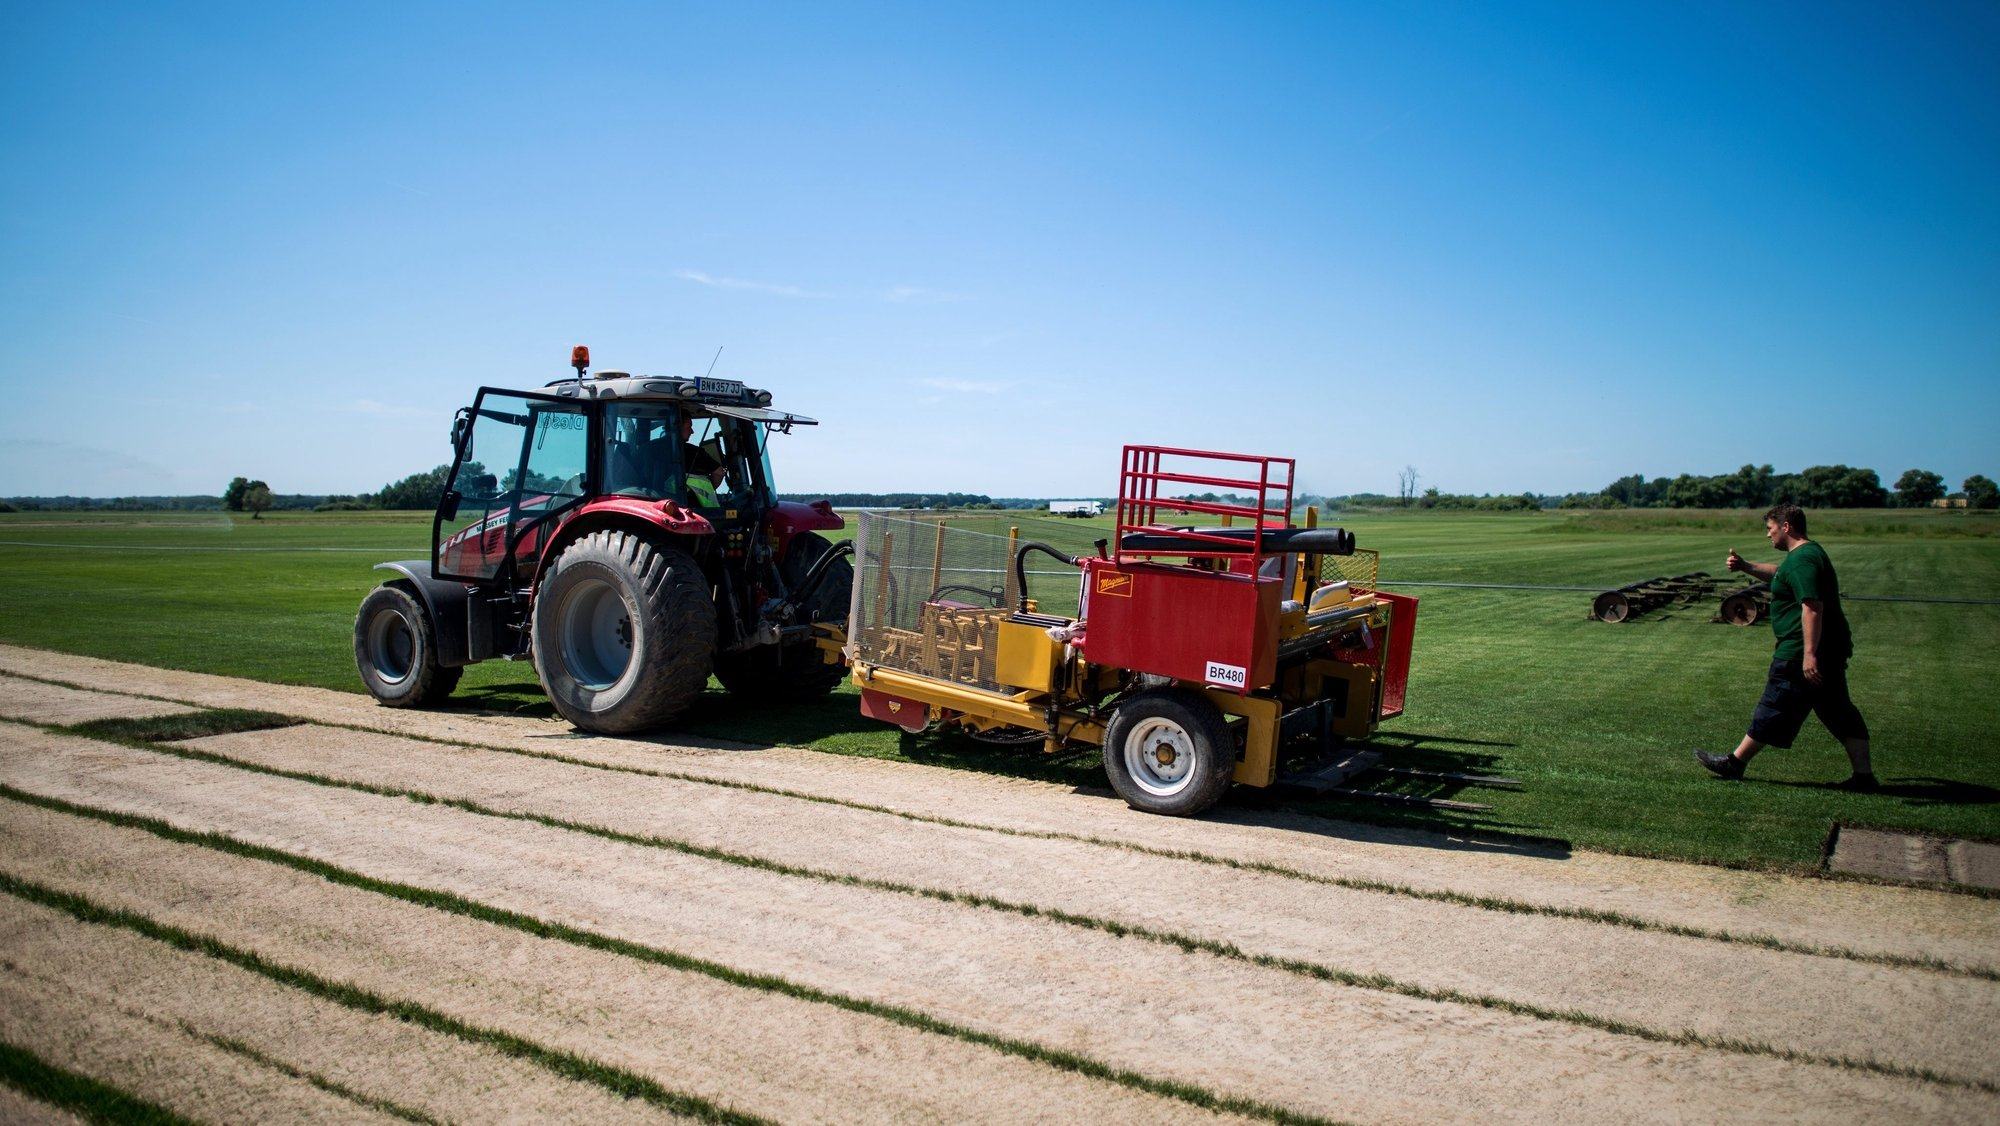 epa05350602 A tractor with a harvester is seen on a sports turf field of turf manufacture Richter Lawn near Zavod, Slovakia, on 07 June 2016. Austrian family business run by the fifth generation, Richter Lawn grows natural turf in Austria and Slovakia. Their special stadium turf lawn, grown on silica sand natural soil, was sodded for the UEFA Champions League Final 2015 in Berlin, Germany, the EURO 2012 in Kiev, Lviv and Donetsk, Ukraine and the EURO 2016 in Nice, Lille and Marseille, France.  EPA/CHRISTIAN BRUNA